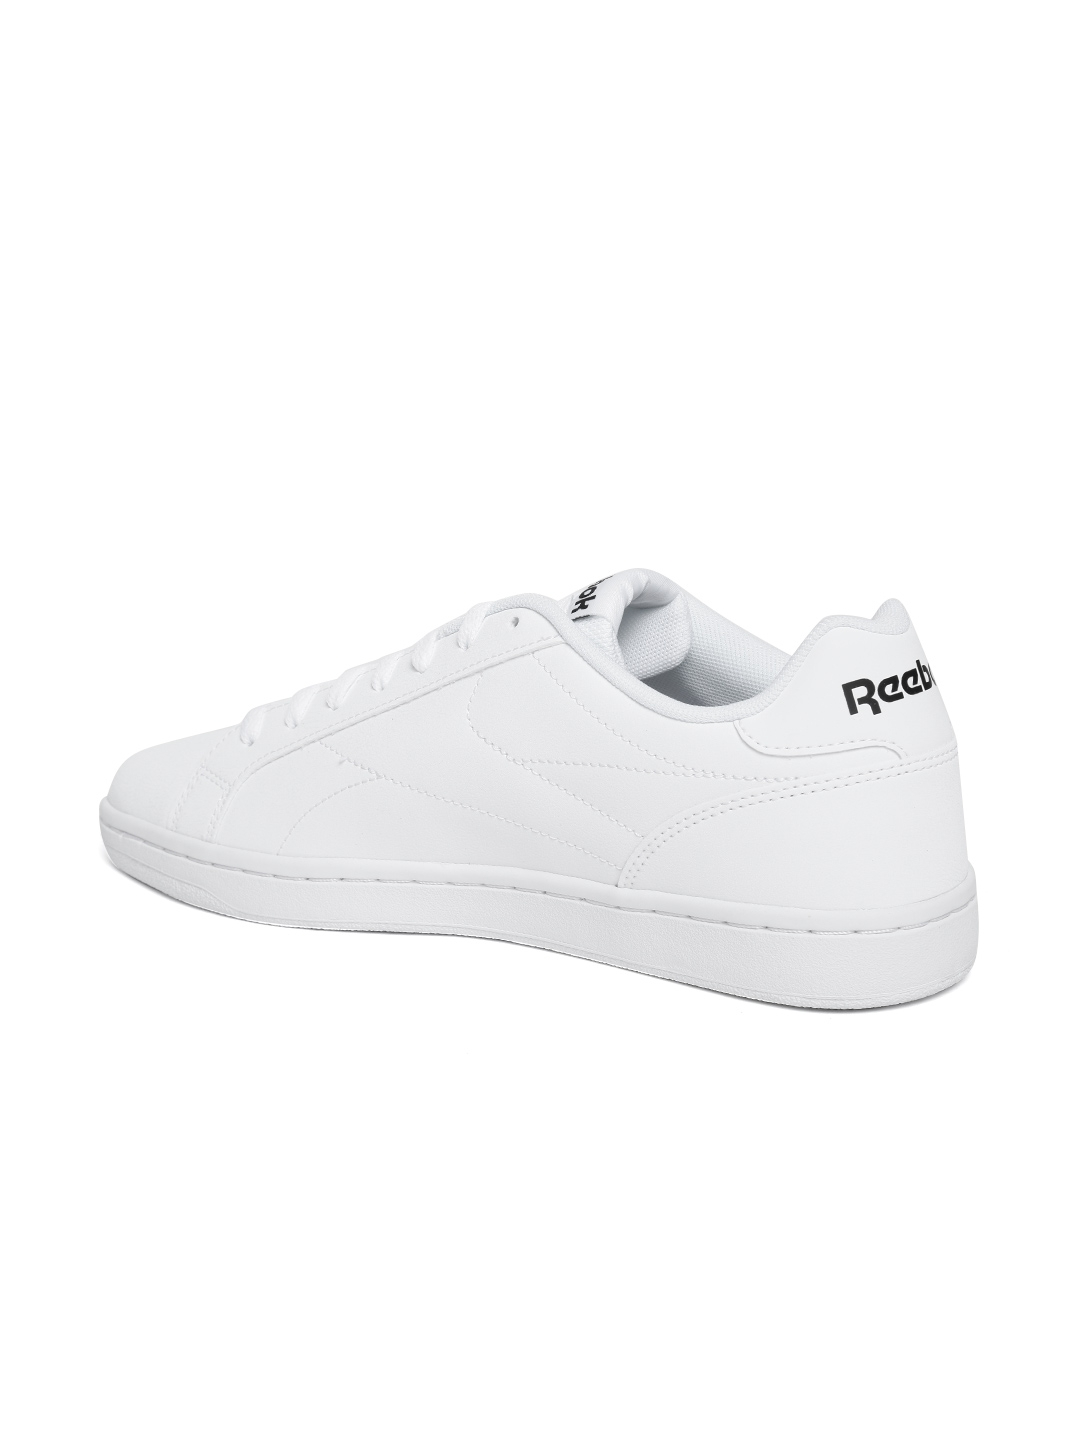 2269d23dcd3 Reebok Classic Men White Royal Complete CLN Sneakers. This product is  already at its best price